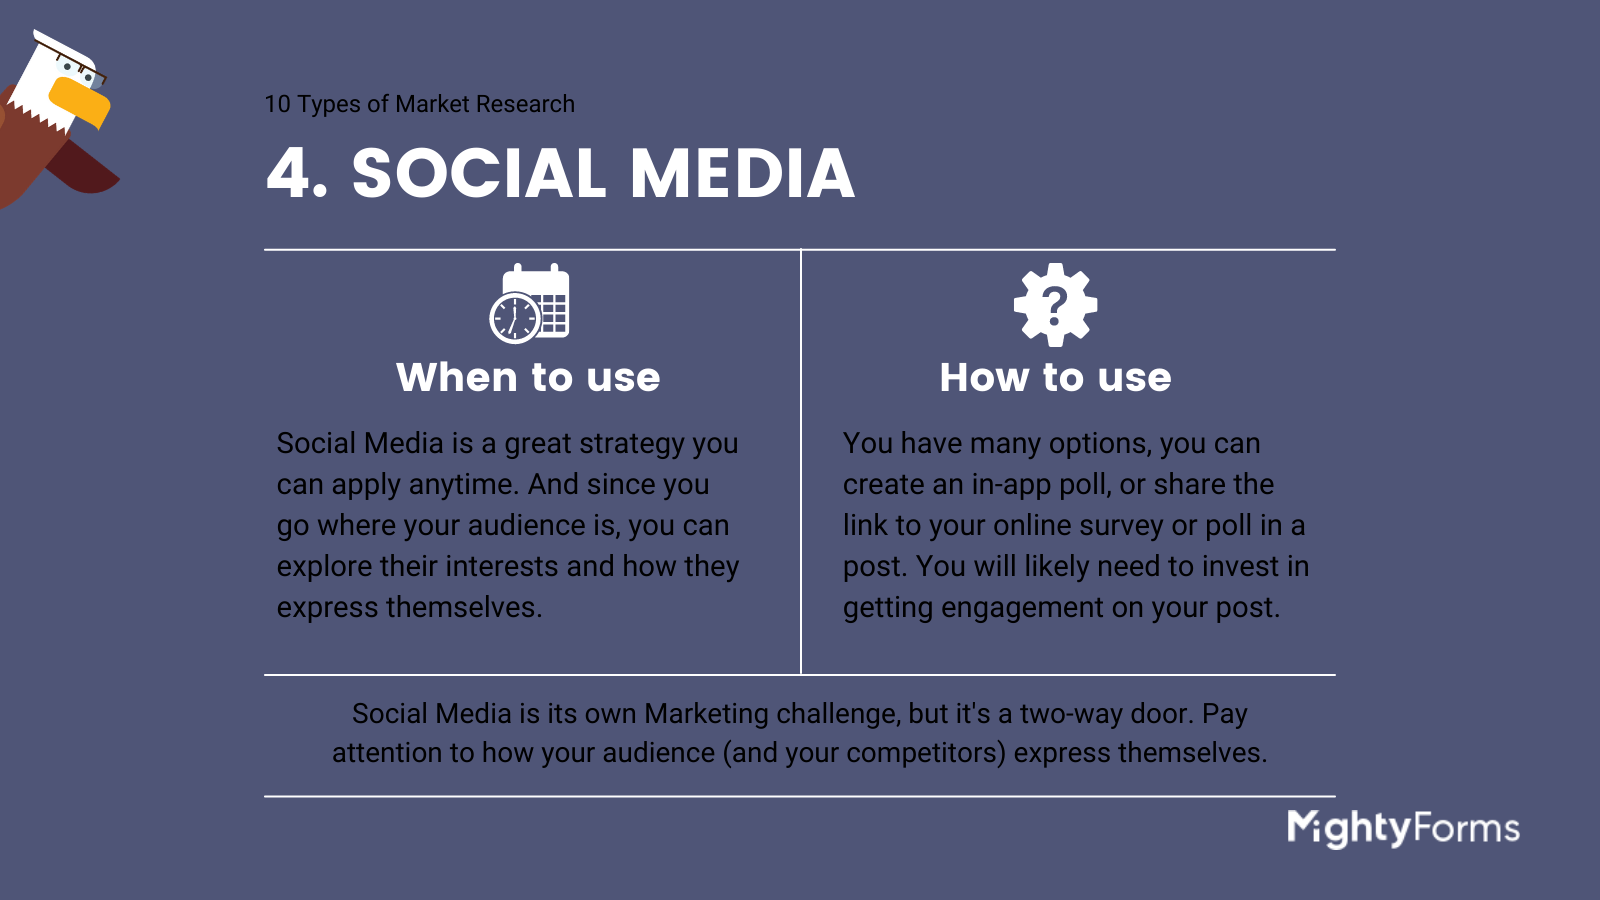 Types of Market Research - Social Media - infographic_ MightyForms